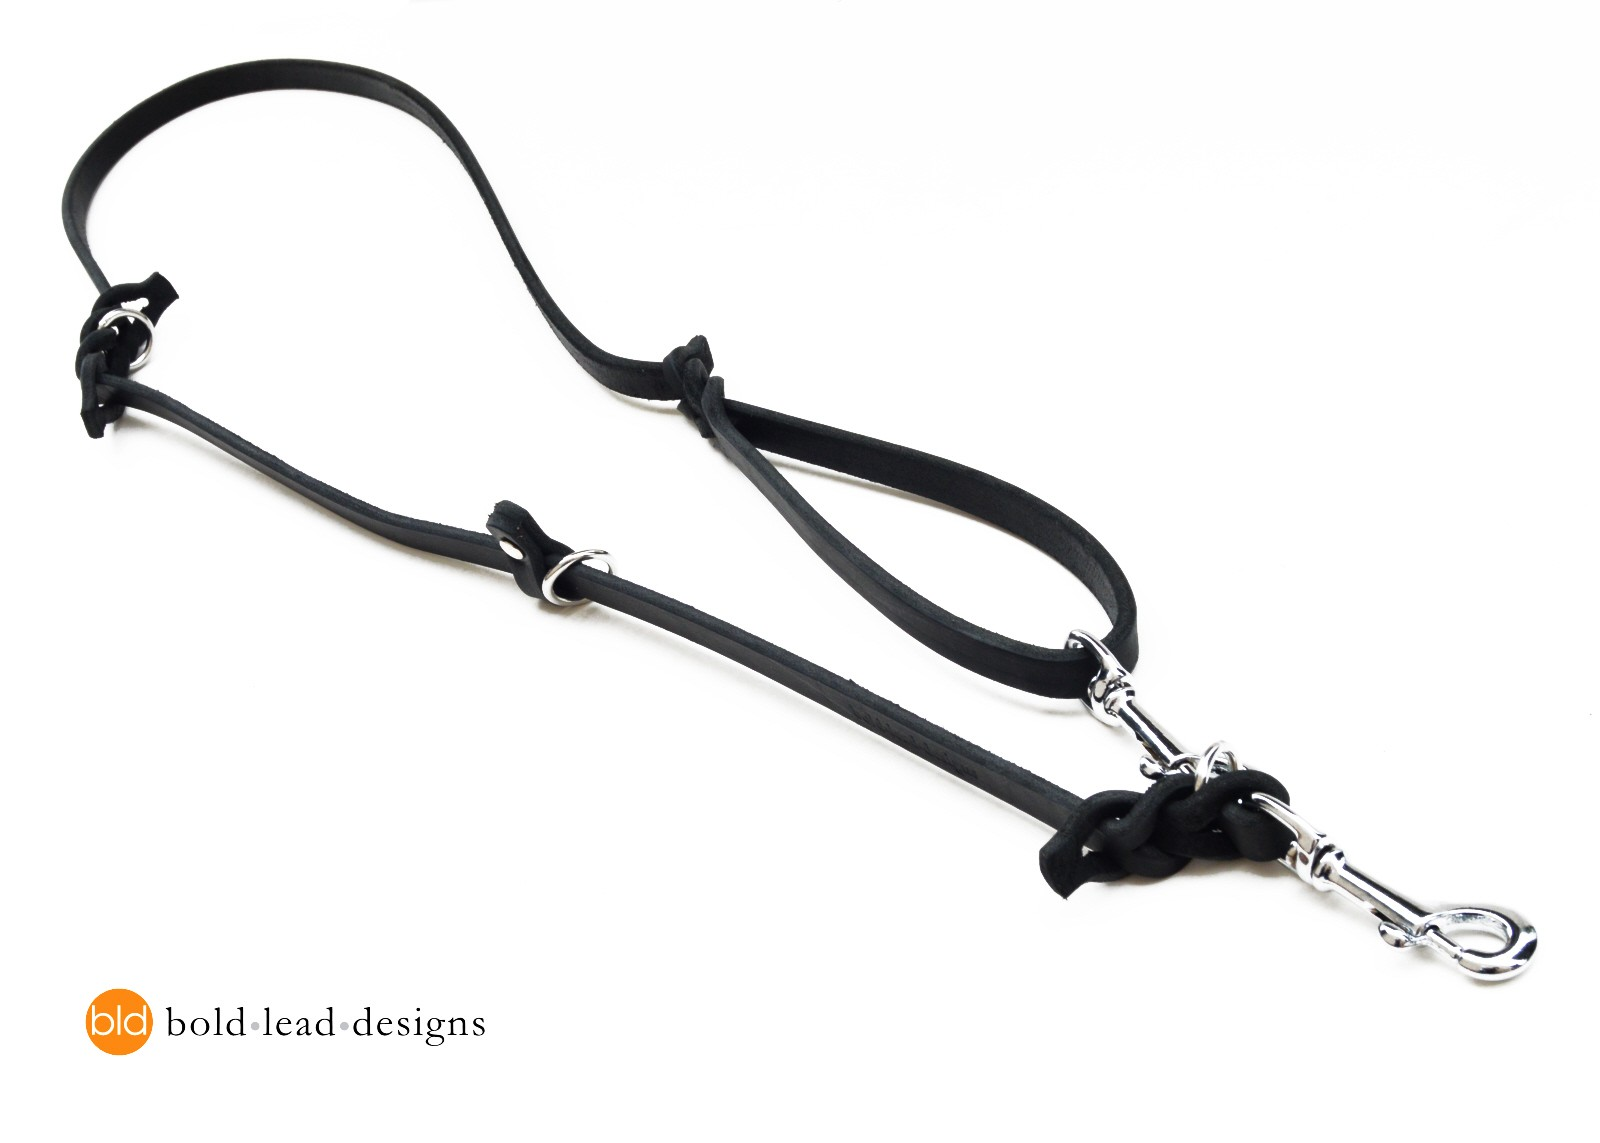 The Working Dog Lead 5 Ft Leather Euro Leash